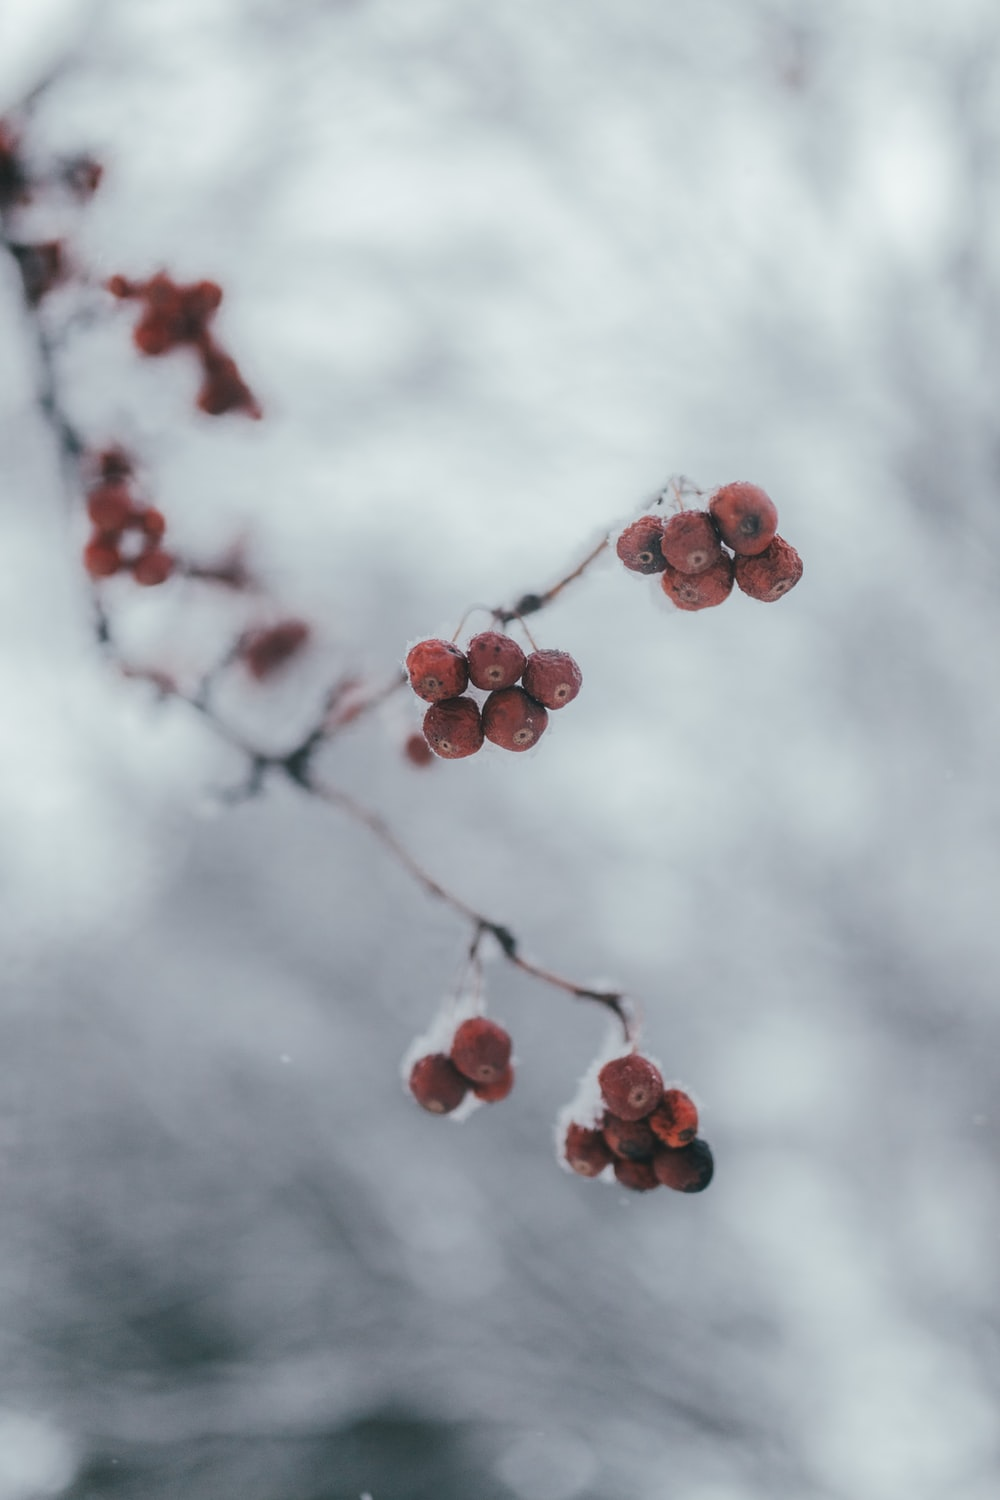 red round fruits on tree branch under white clouds